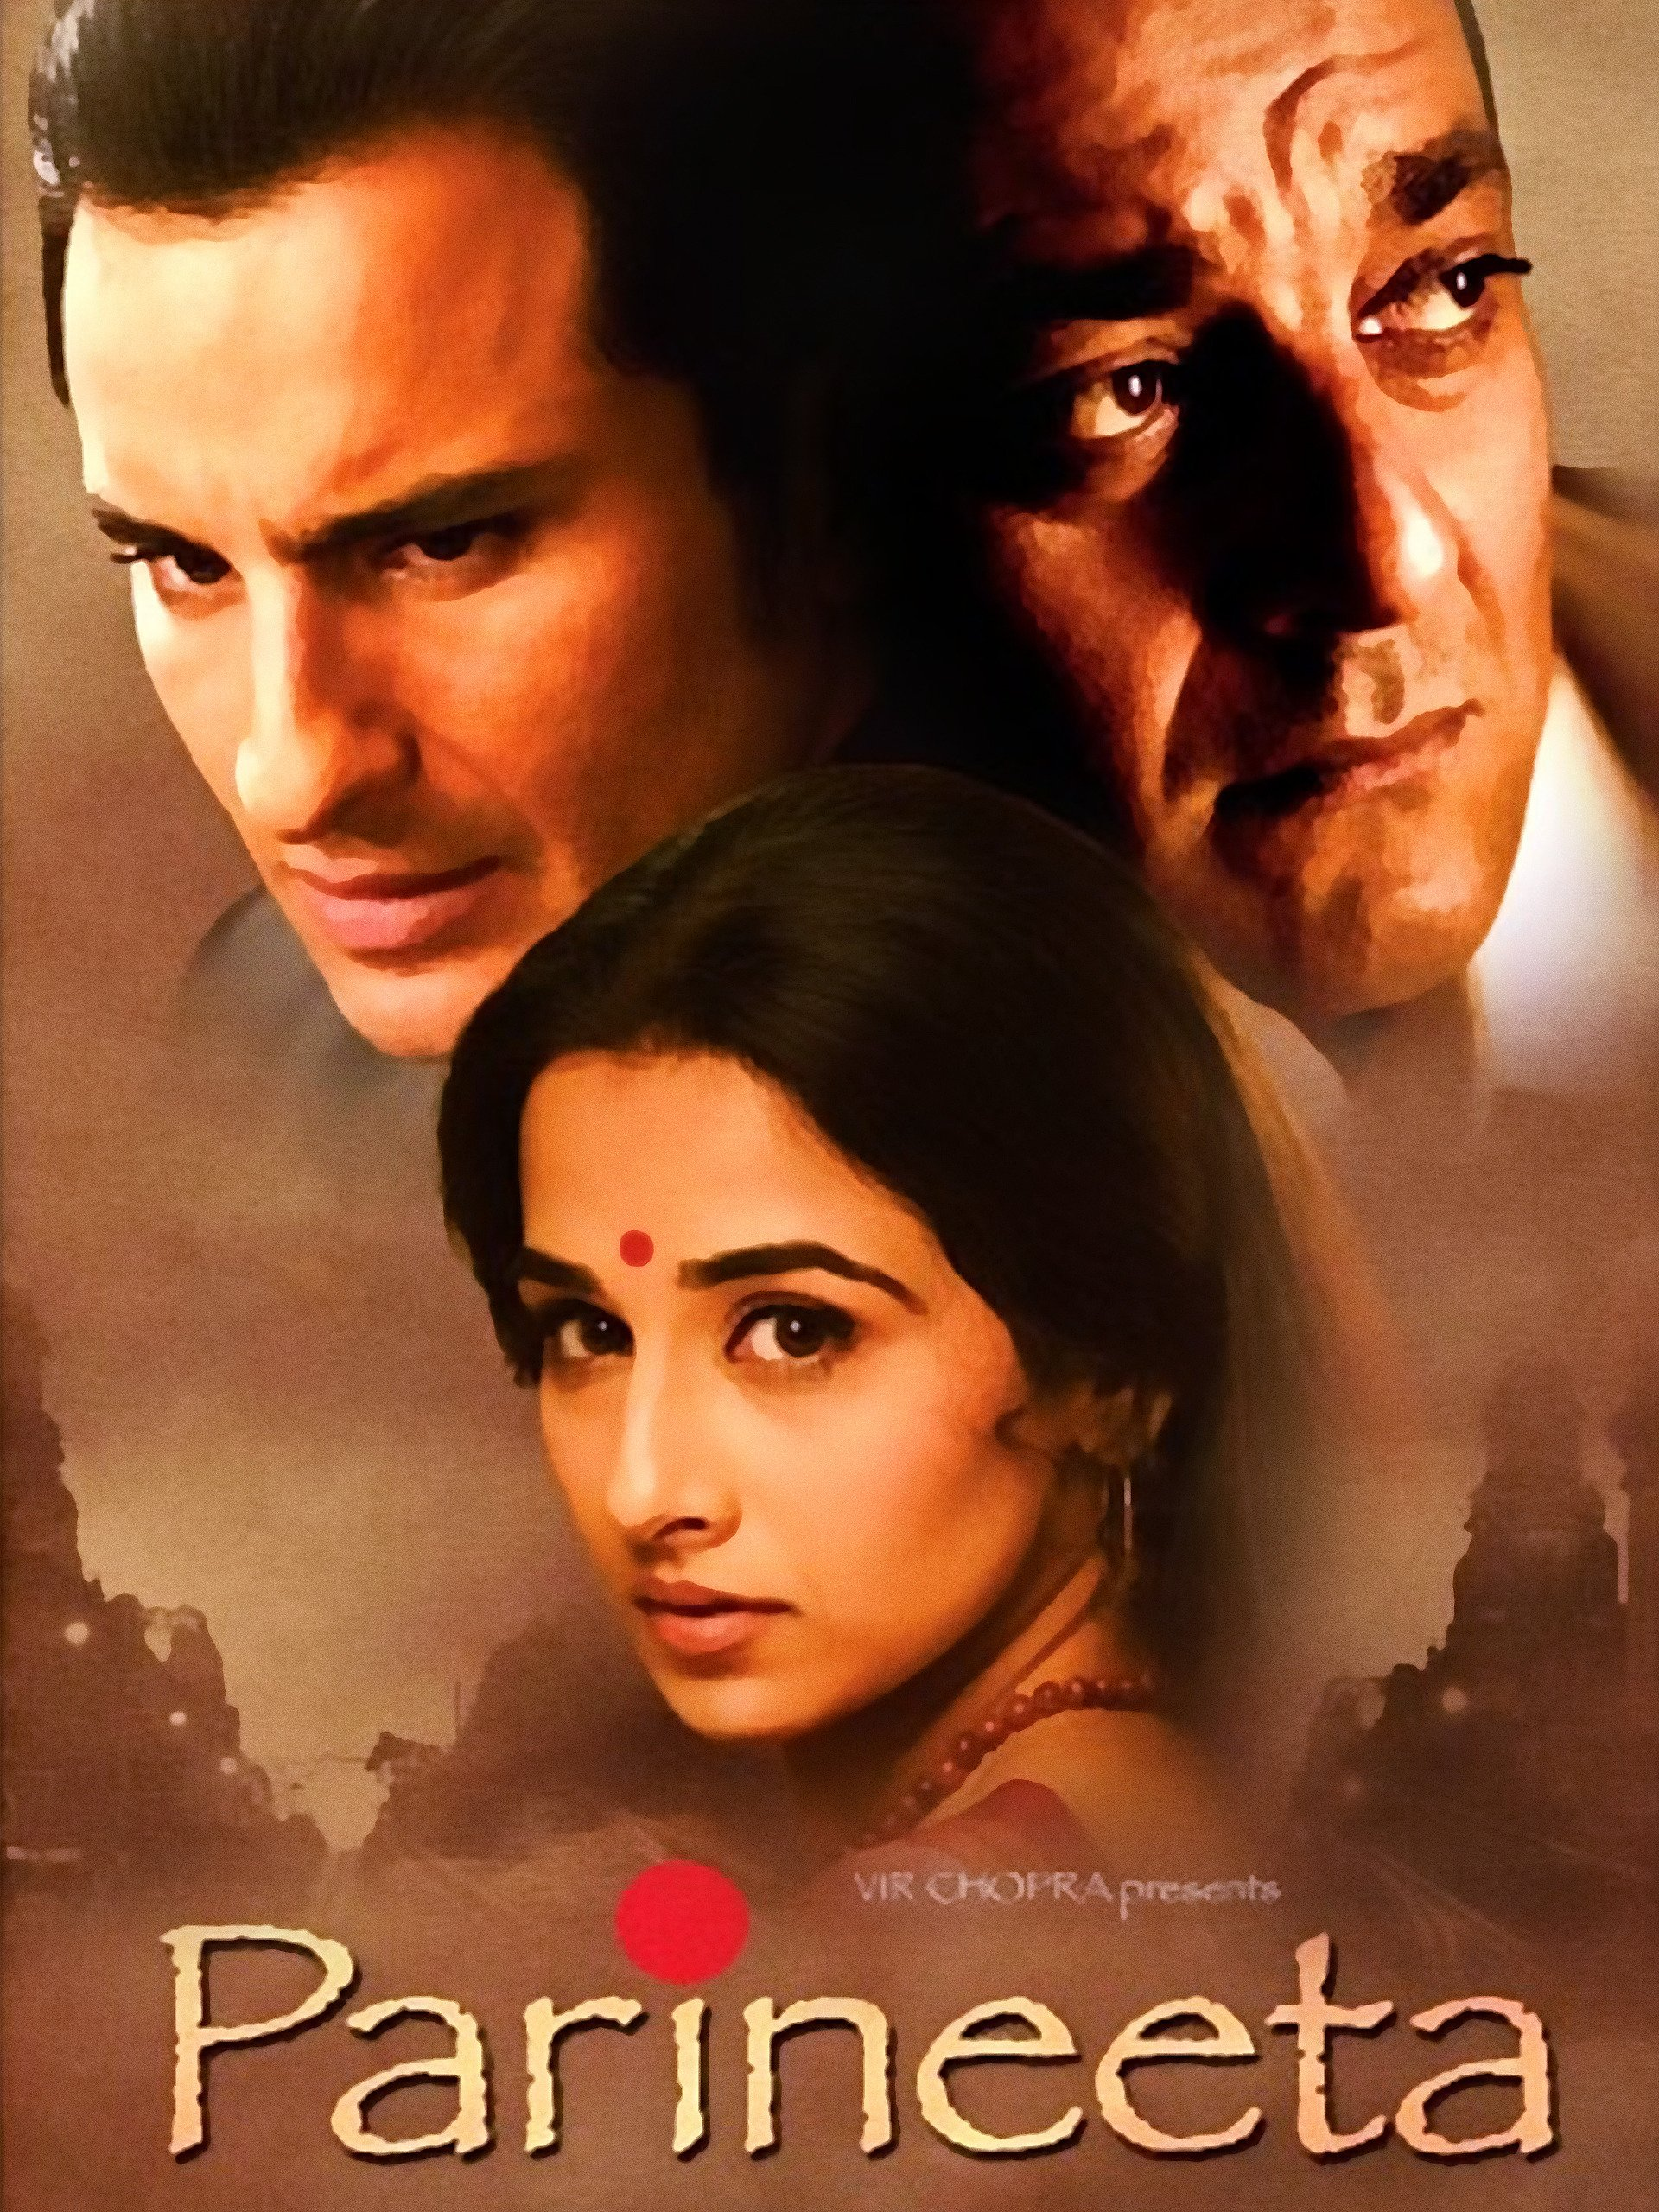 Watch Parineeta Prime Video